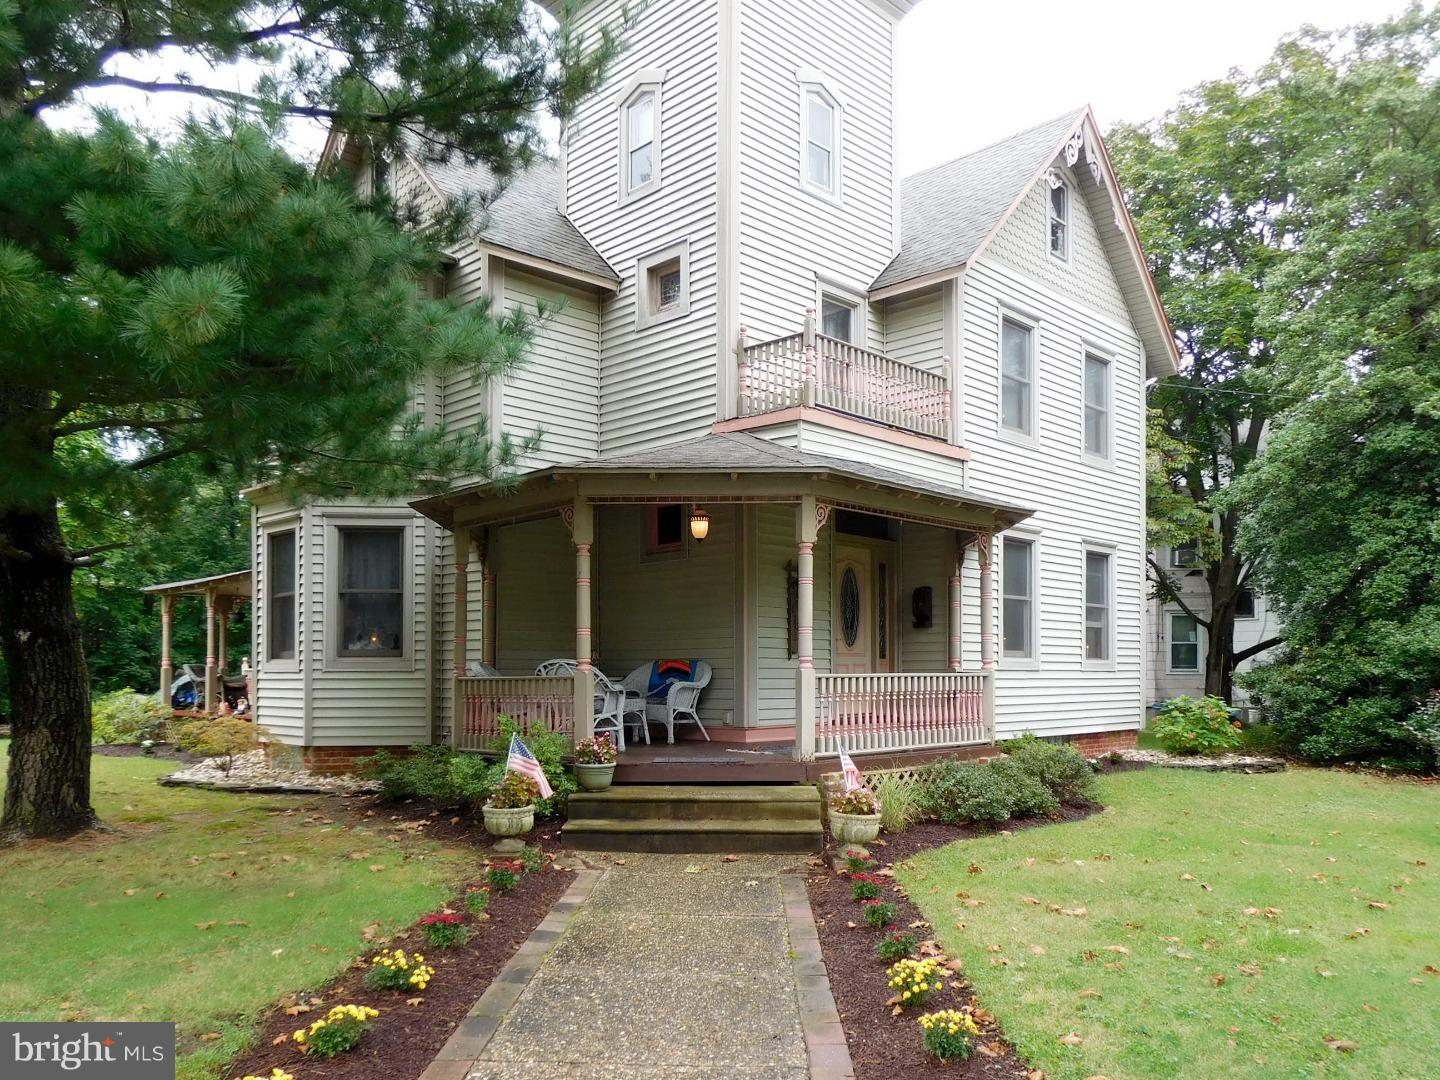 Single Family Home for Sale at 443 BENTLEY Avenue Beverly, New Jersey 08010 United States